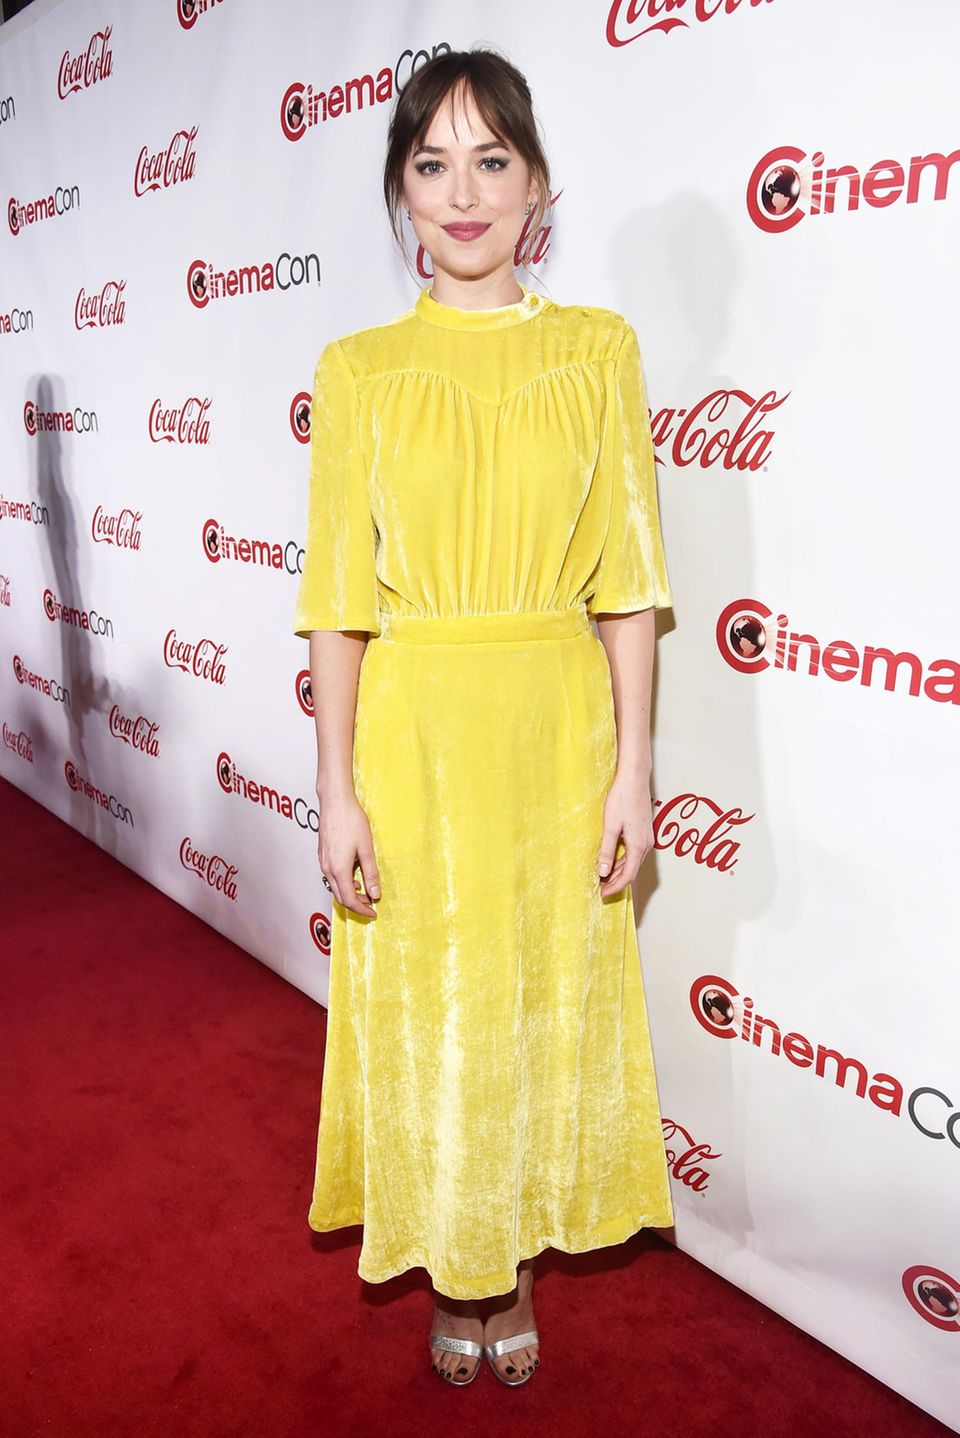 Sonnig in Samt: Dakota Johnson leuchtet bei den Big Screen Achievement Awards der CinemaCon in einem Kleid von Attico.